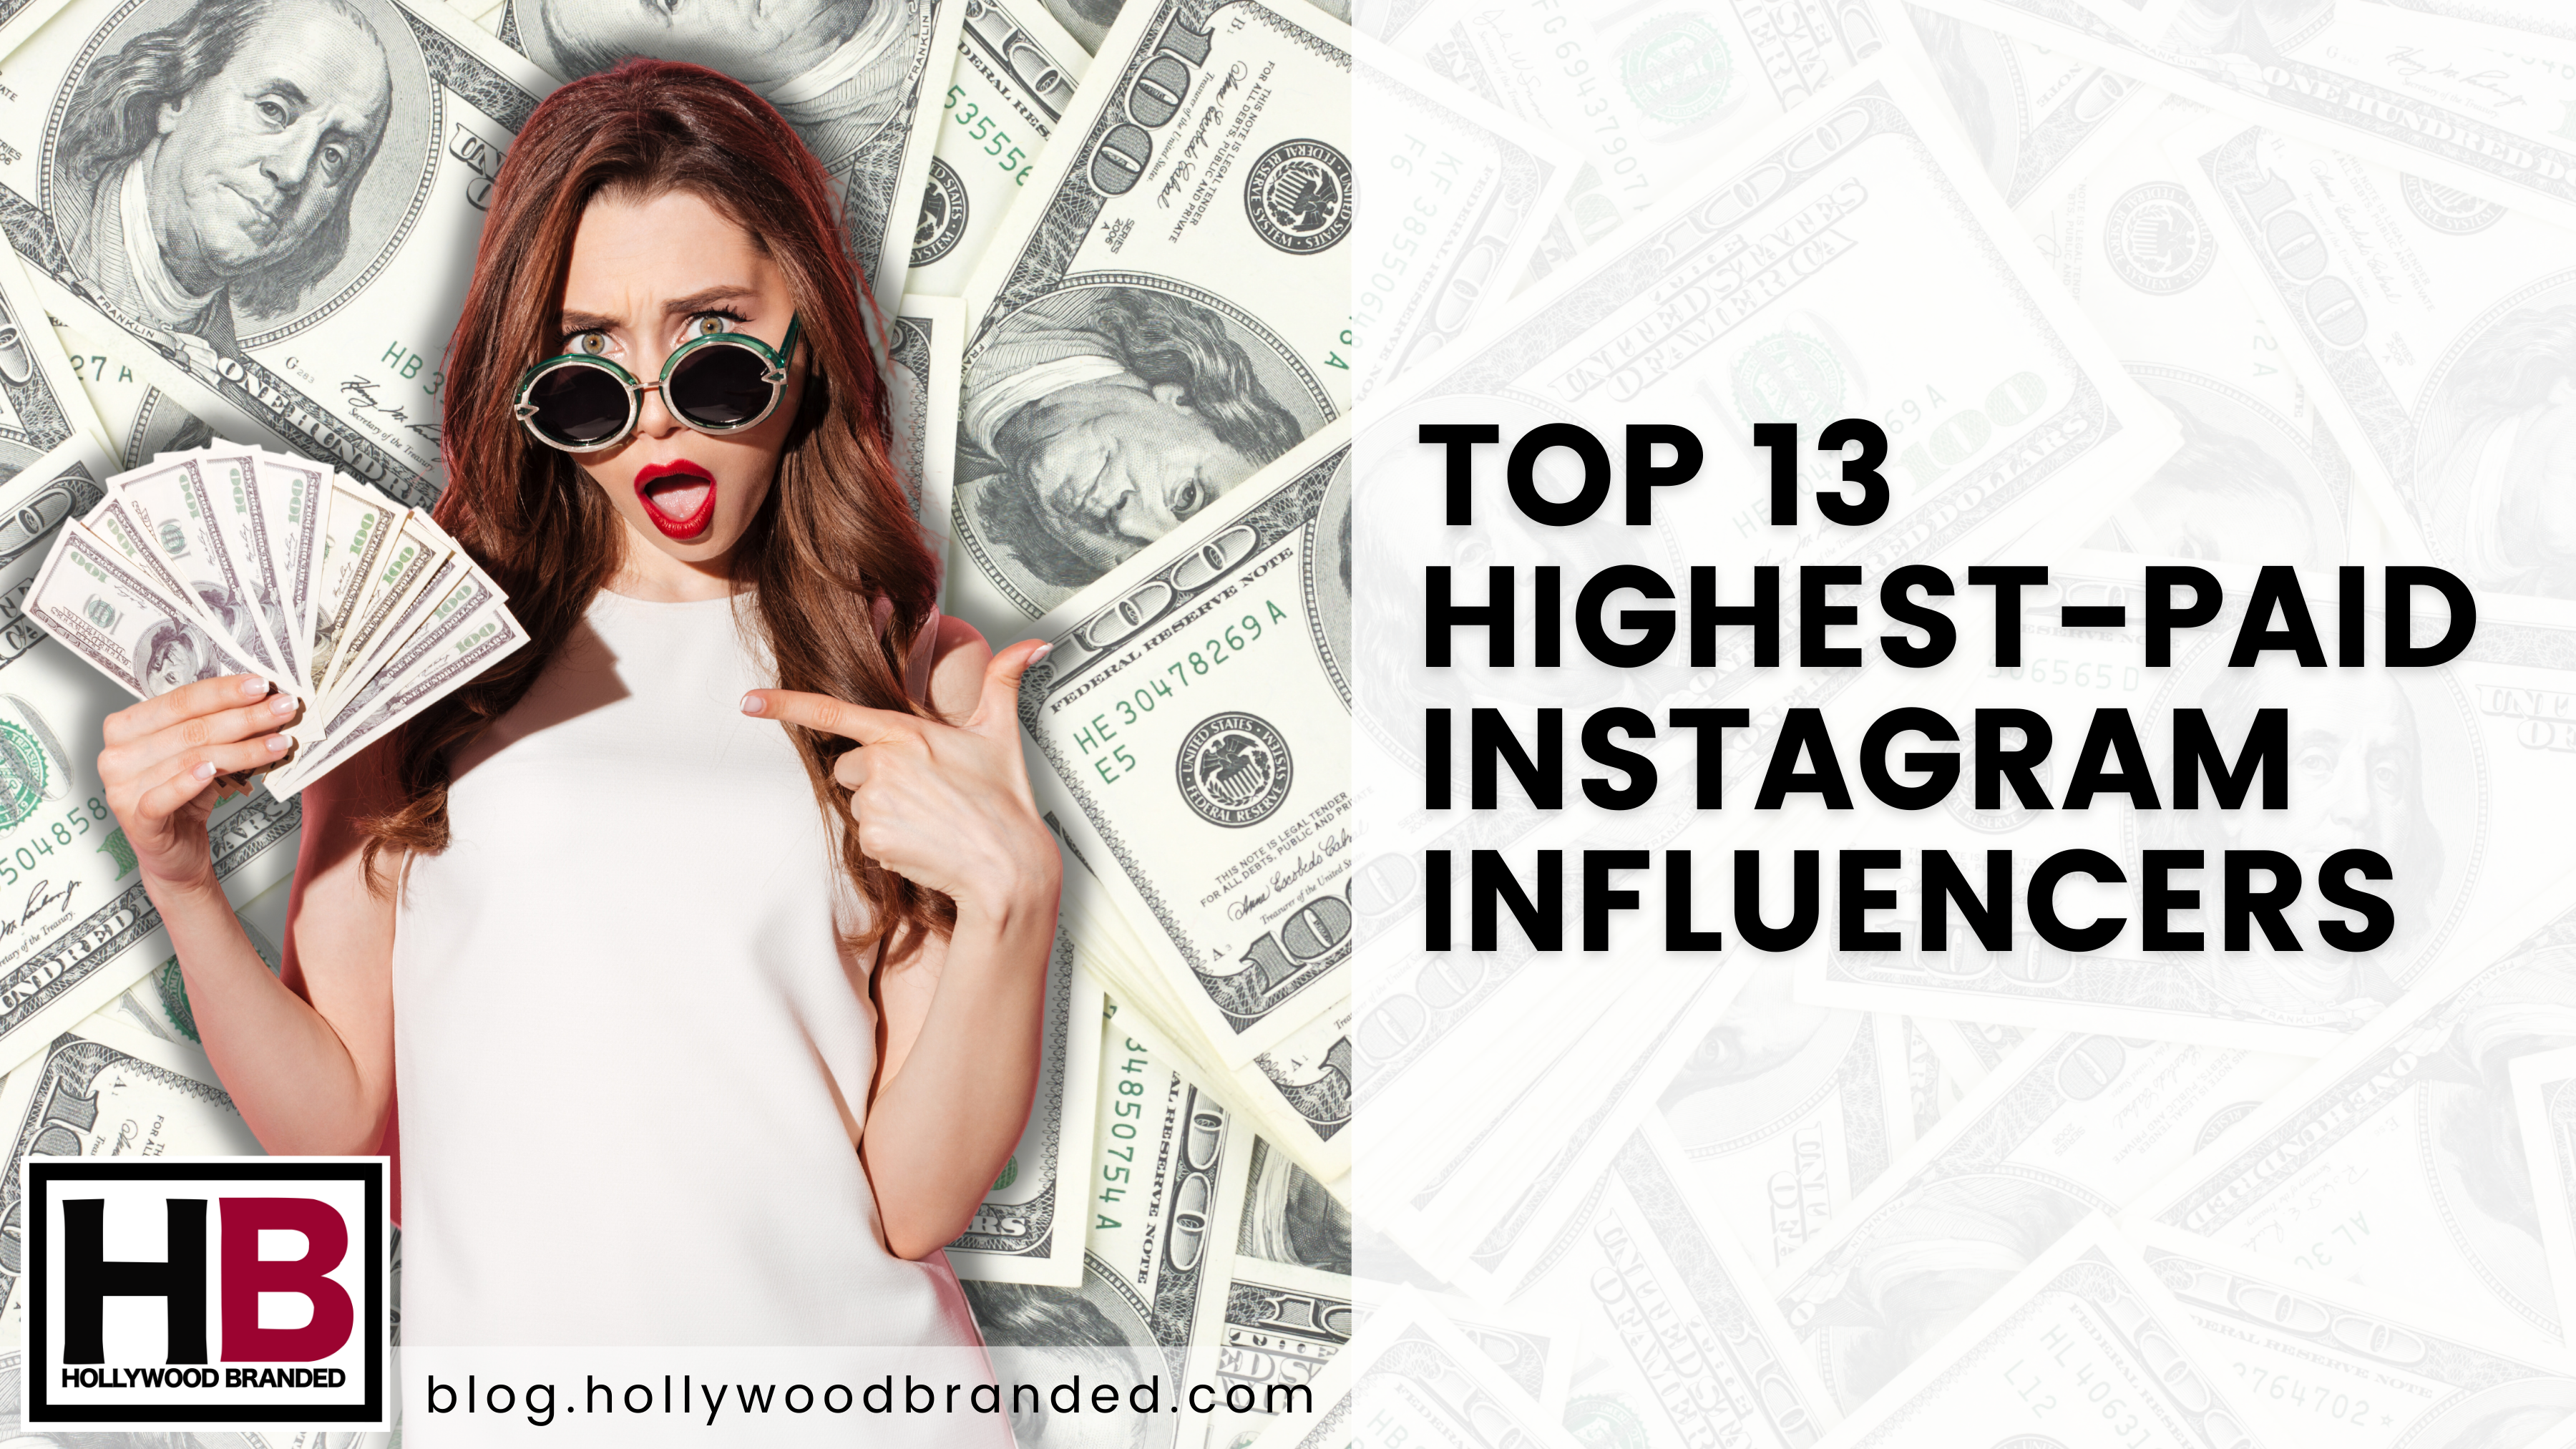 TOP 13 HIGHEST-PAID INSTAGRAM INFLUENCERS AND THEIR BRAND DEALS